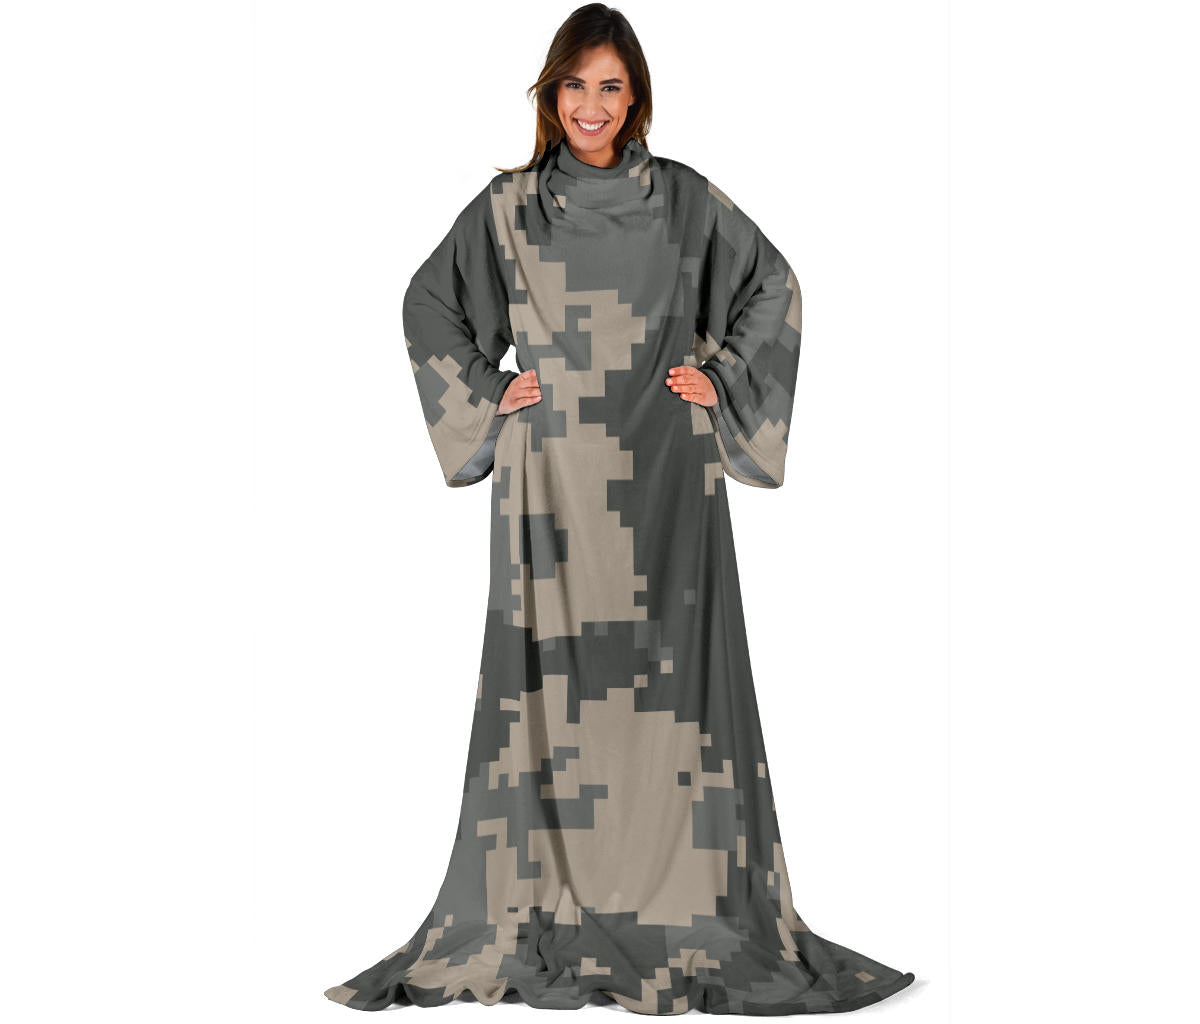 ACU Digital Camouflage Adult Sleeve Blanket